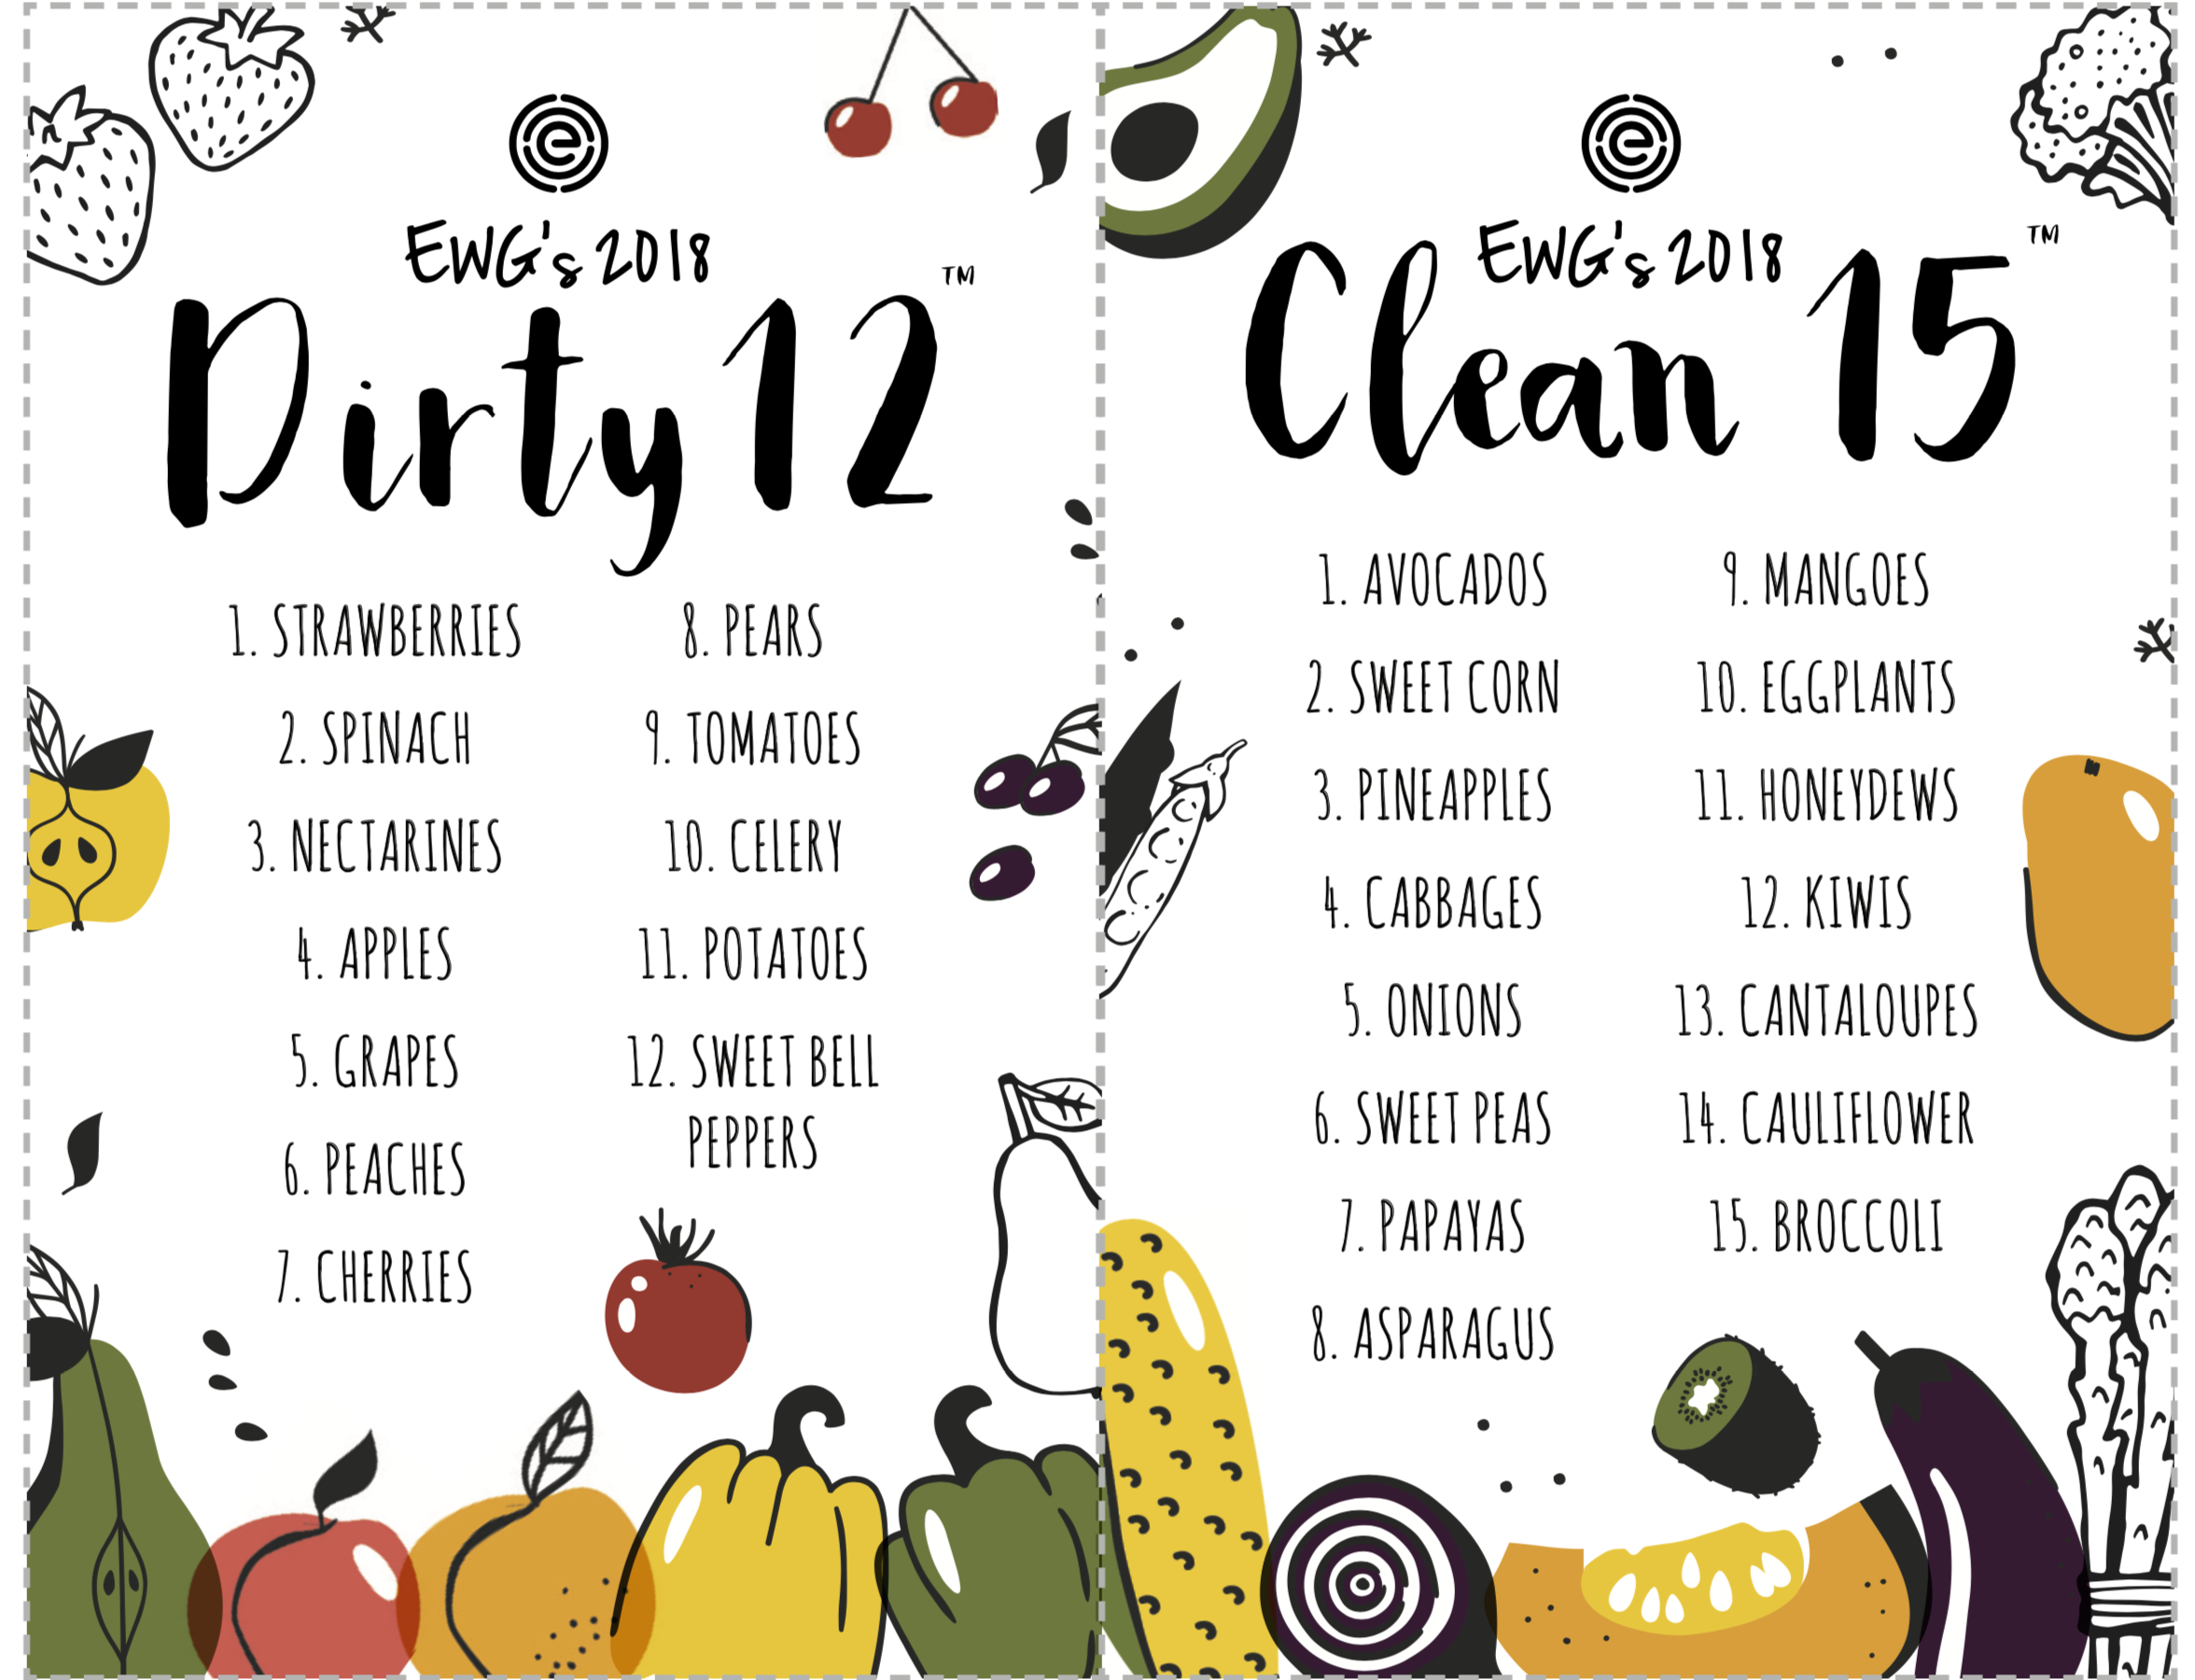 """Produce Guide - In a perfect world, we would have access to only organically grown produce. Thanks to the hard work by the folks at EWG, we have a guide that makes our produce shopping choices easier. The clean 15 are """"okay"""" if not organic, the dirty dozen are a """"no-go"""" if they are not organic. Click on the link to see more from EWG.org"""